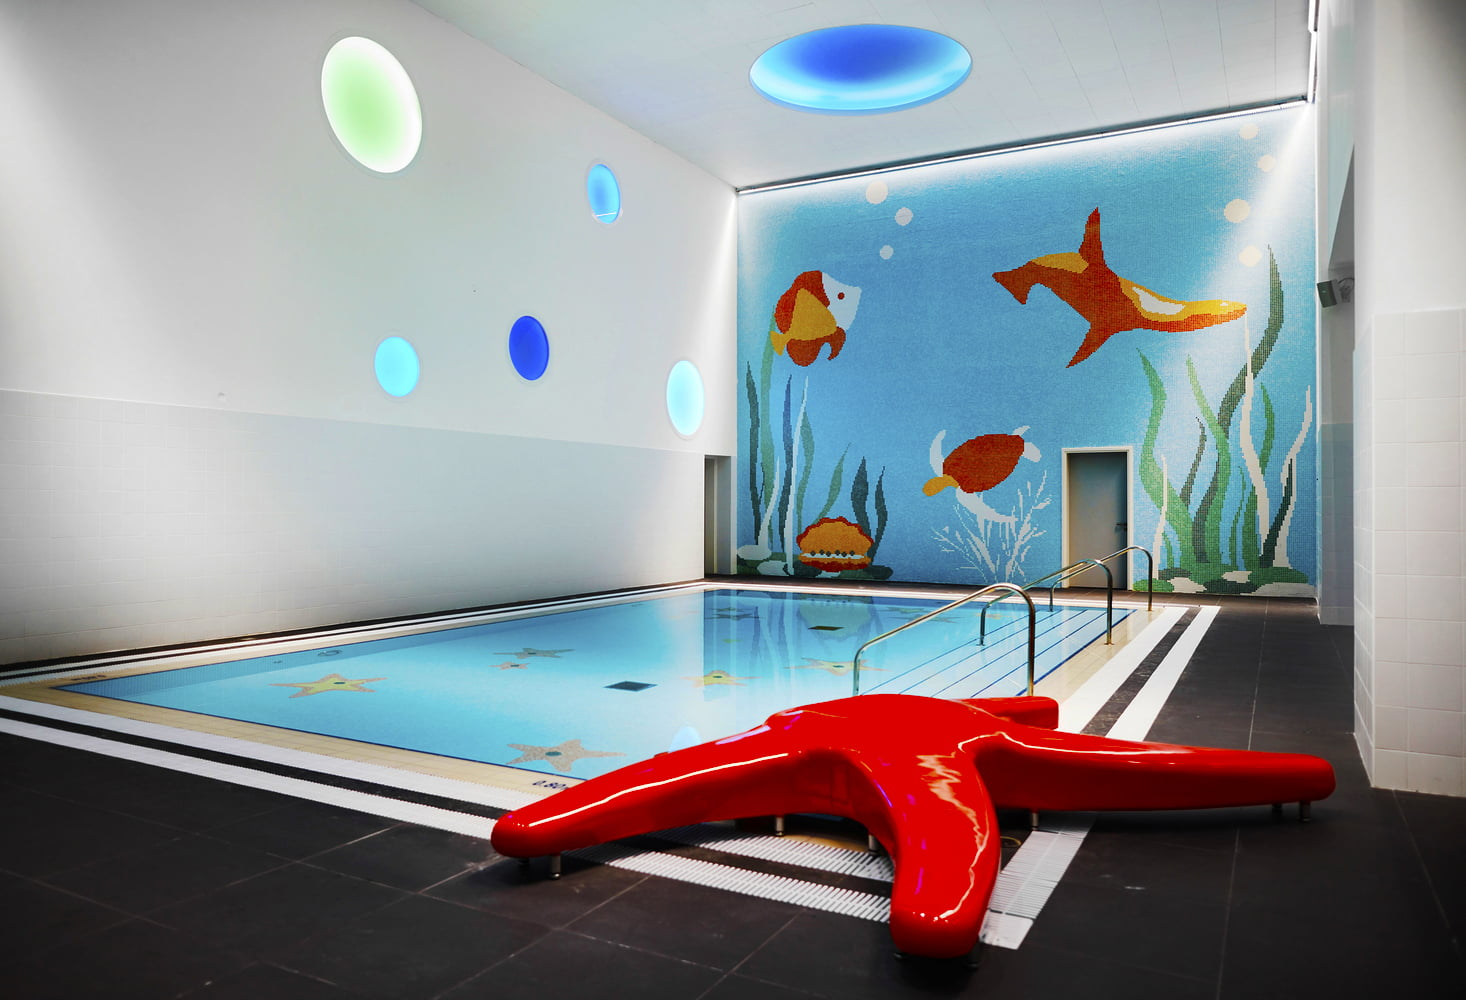 Photograph of swimming facilities for children at The Sheikh Zayed Private Academy for Boys in Abu Dhabi